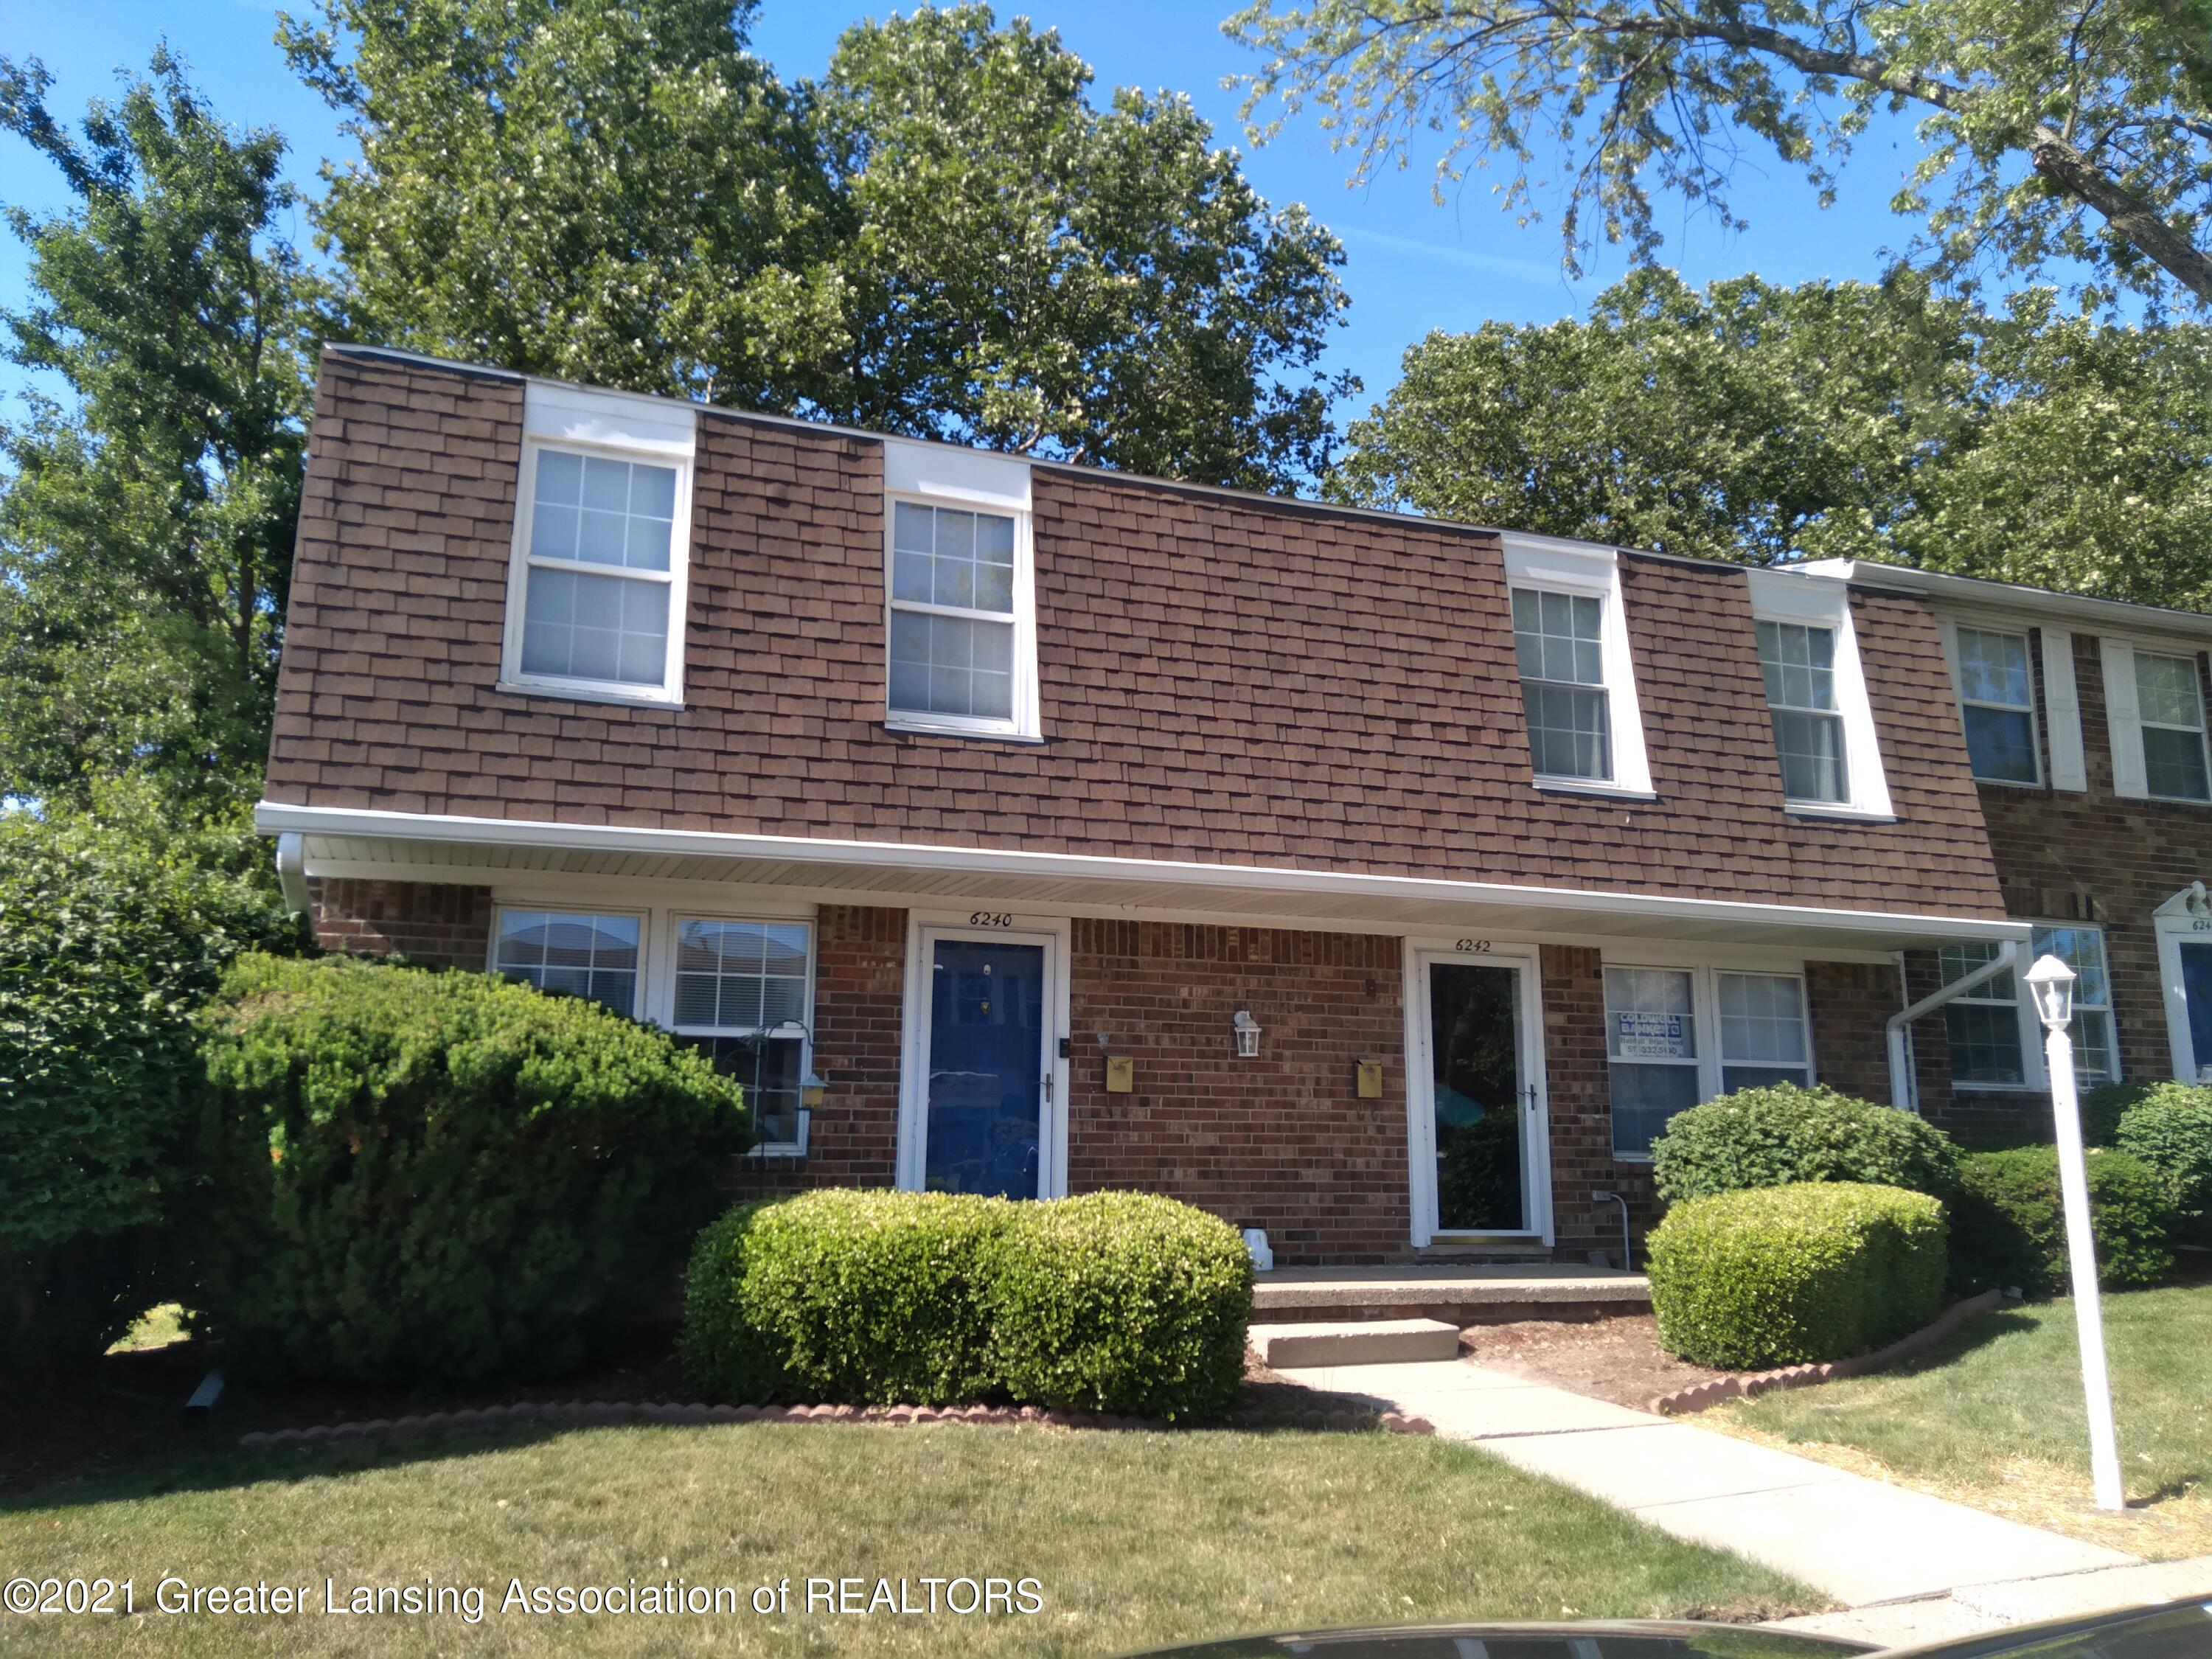 6242 Beechfield Dr 102 - Exterior N elevetion - 1